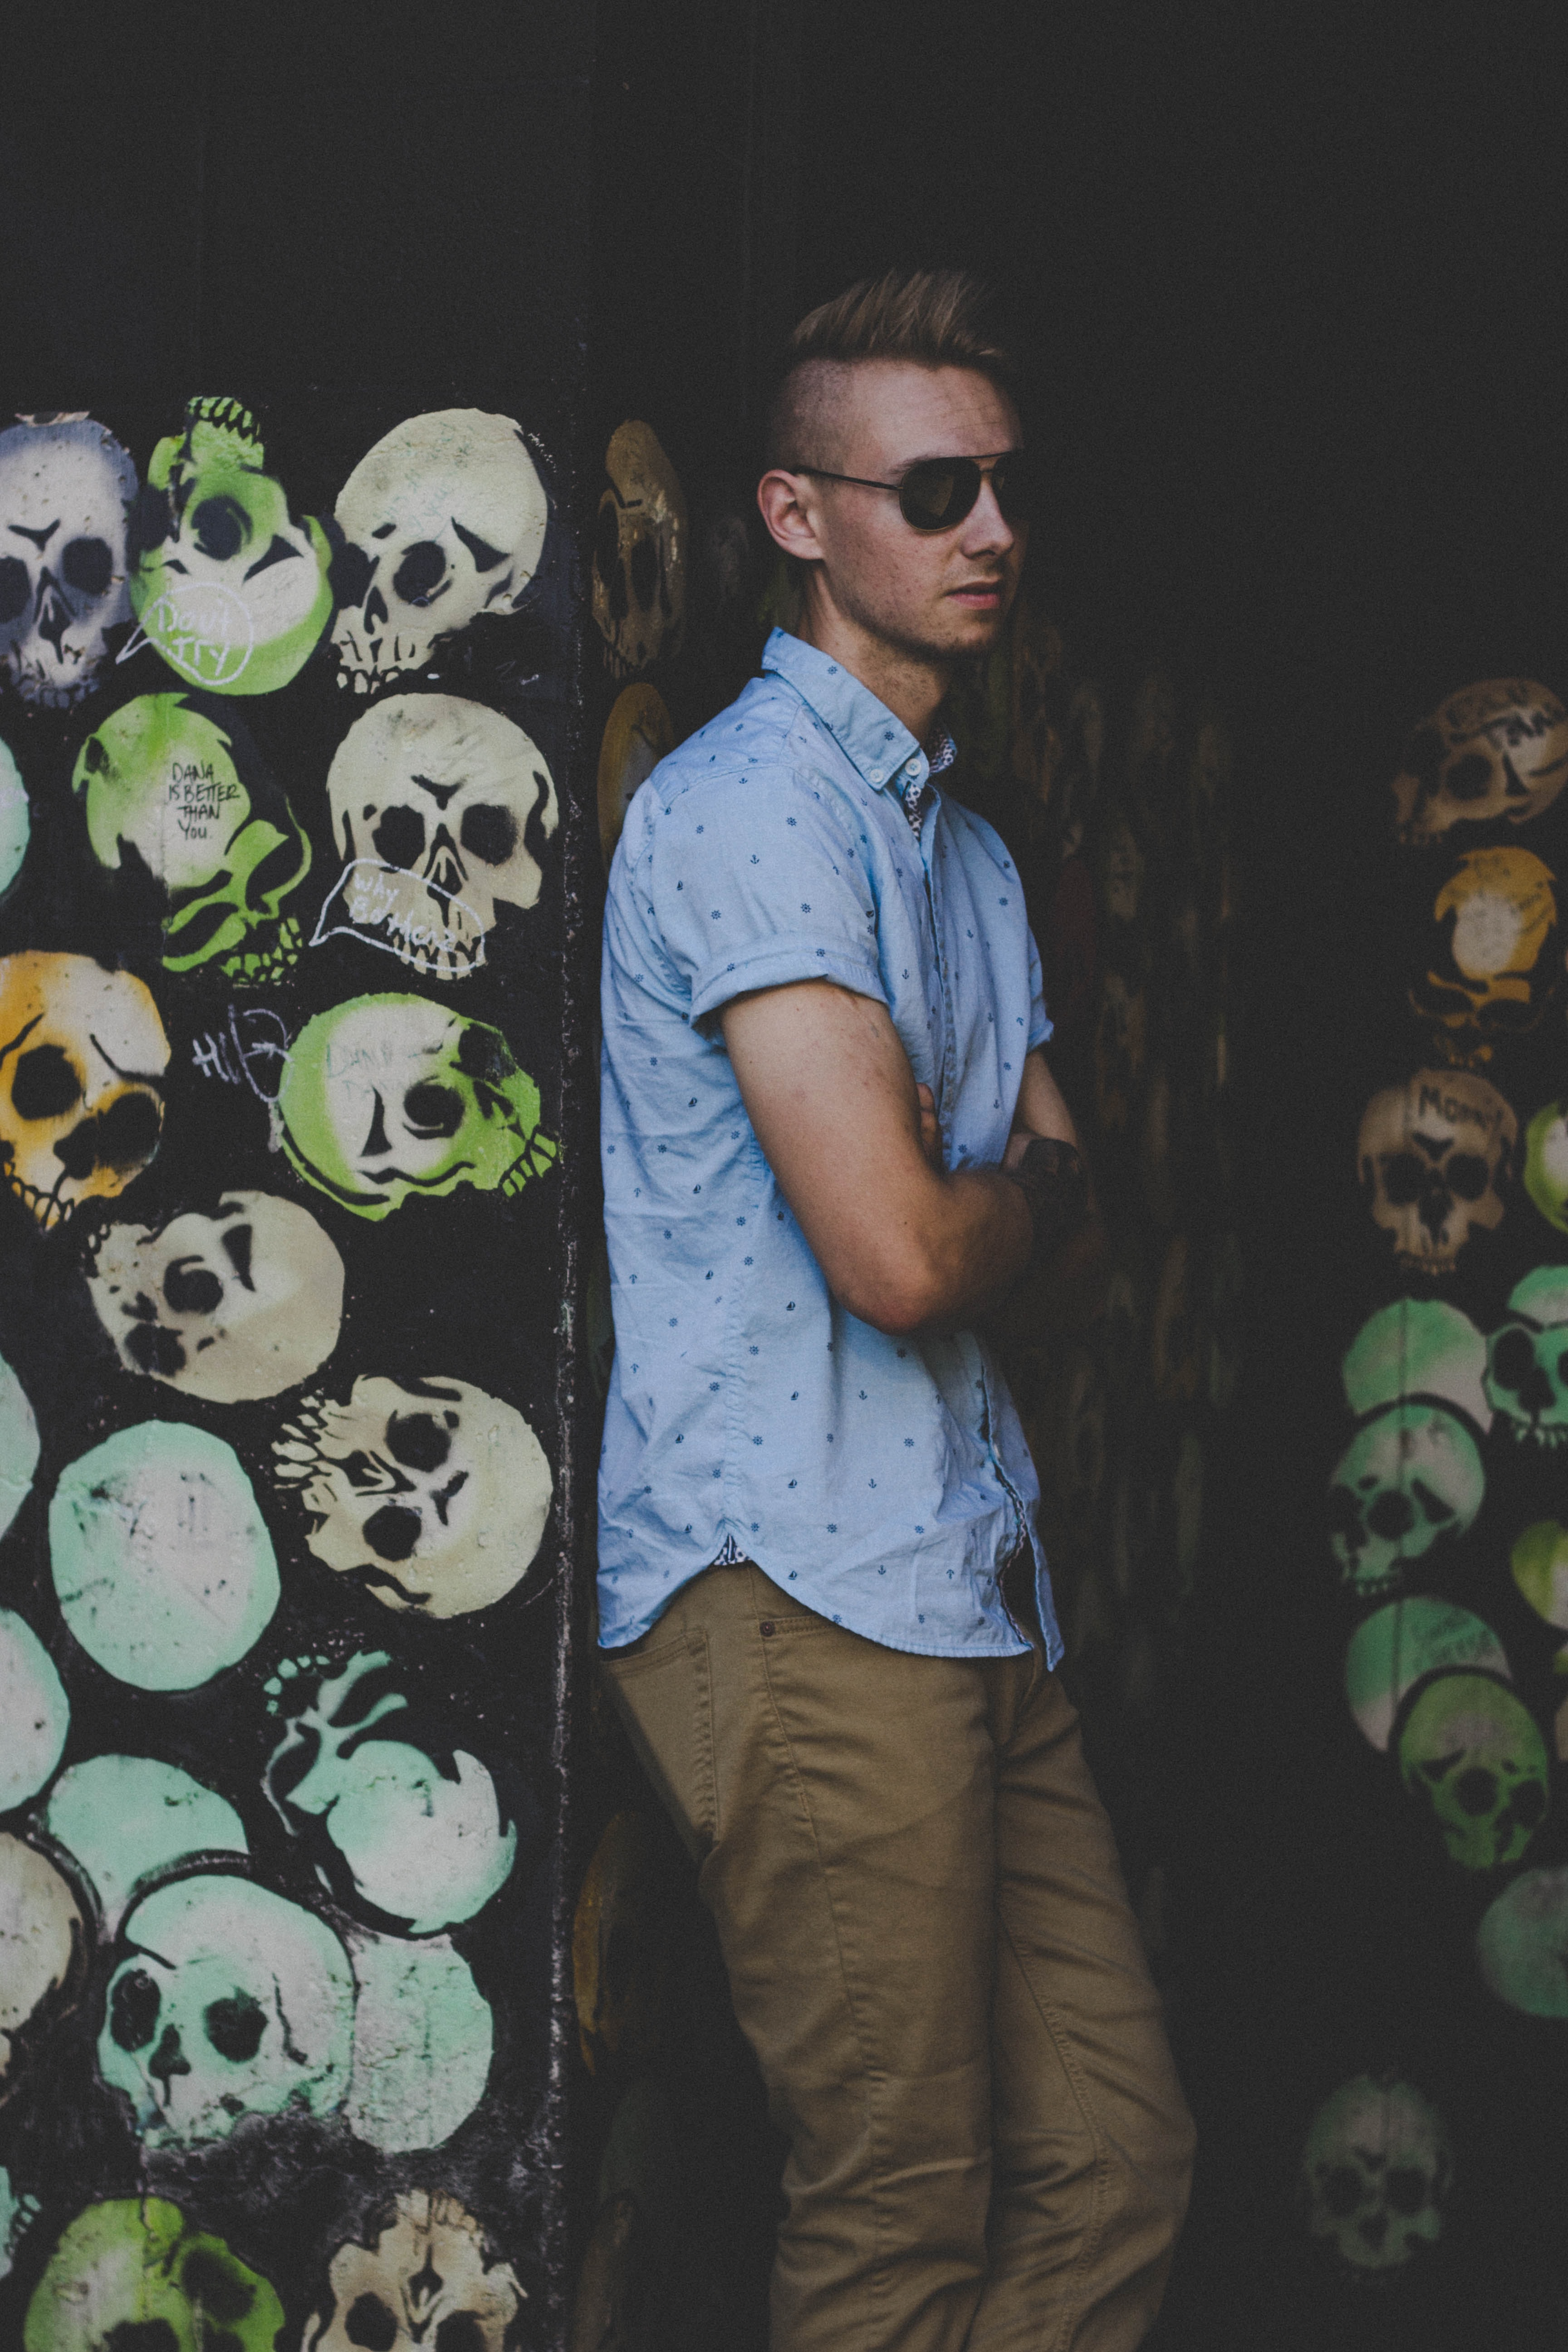 men wearing blue button-up shirt leaning on black graffitied wall